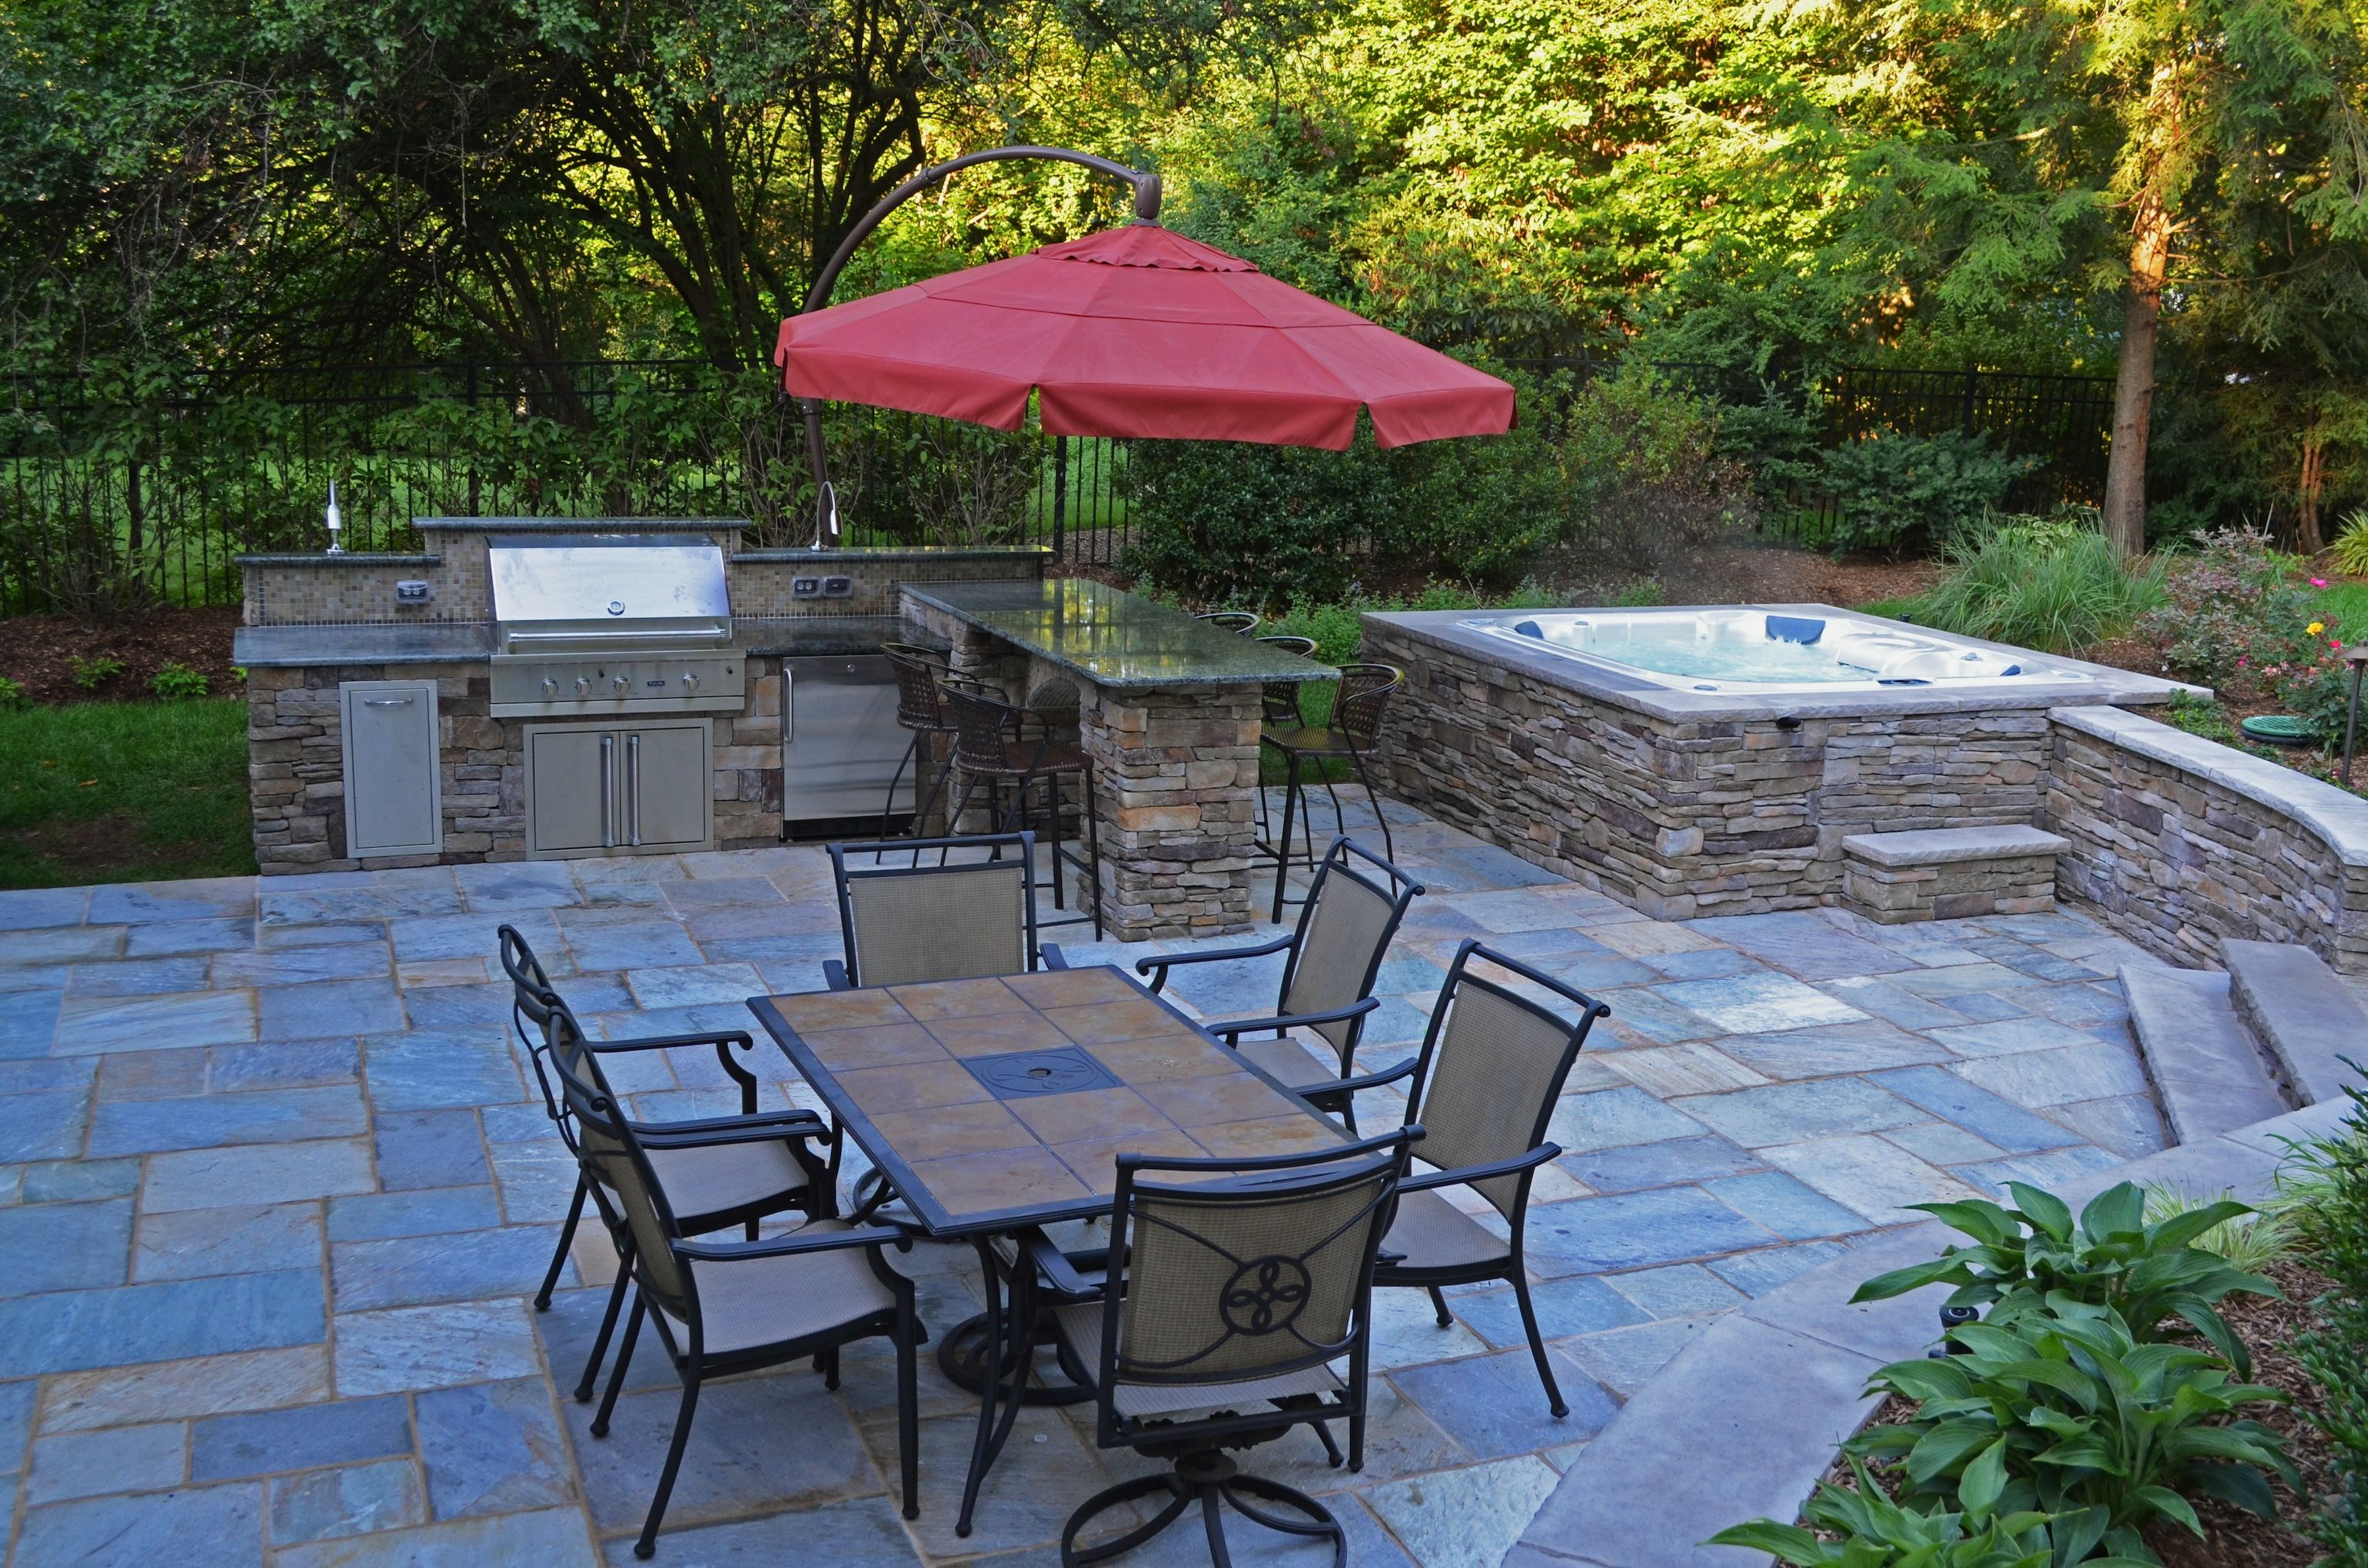 Beau Stone Patio And Hot Tub | The Natural Stone Walls And Patio Create A  Well Defined Outdoor Living .